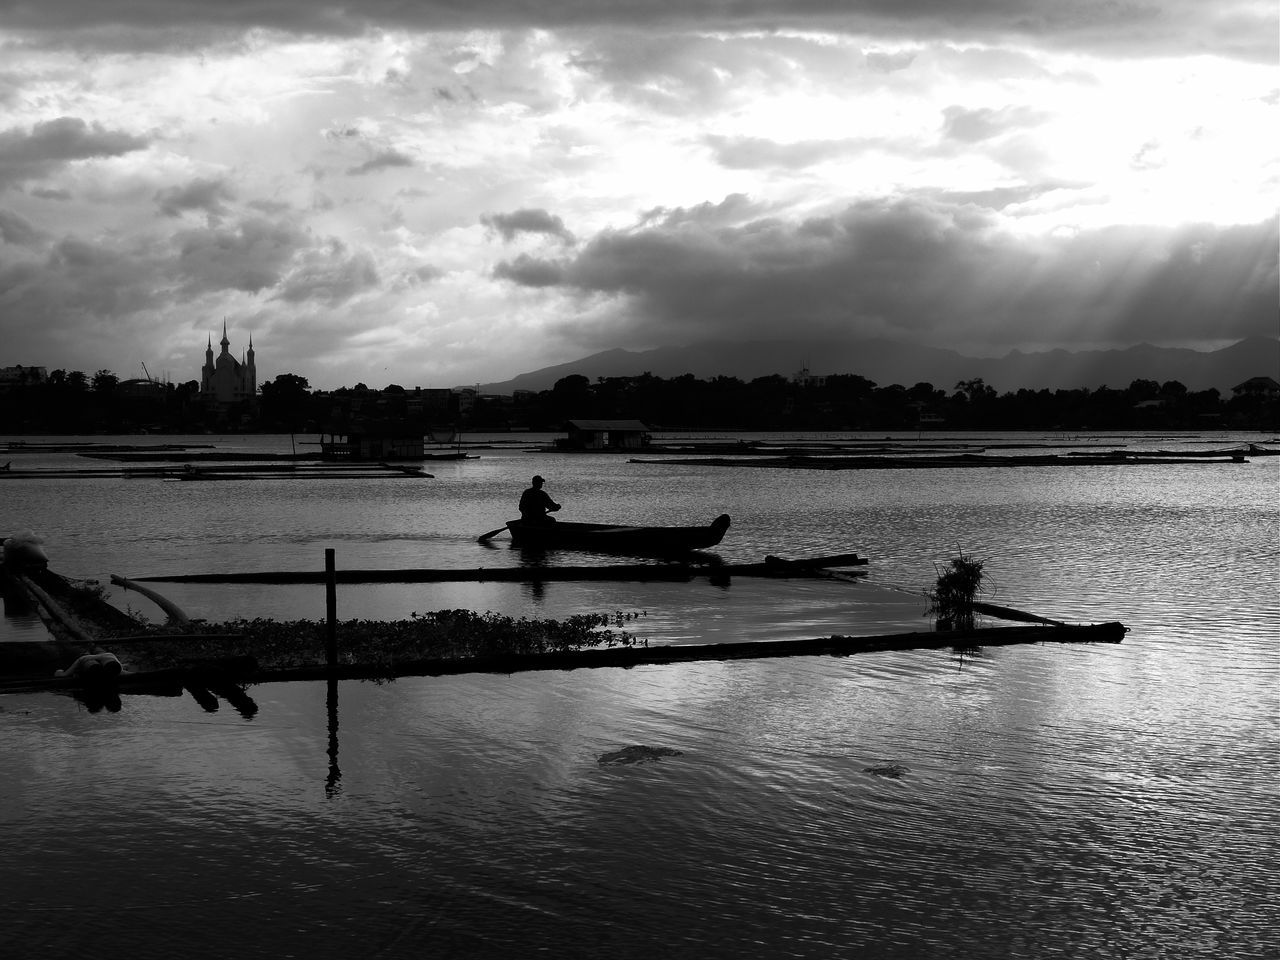 nautical vessel, water, transportation, cloud - sky, mode of transport, sky, boat, real people, river, rowing, men, one person, outdoors, silhouette, oar, nature, canoe, day, sitting, outrigger, one man only, people